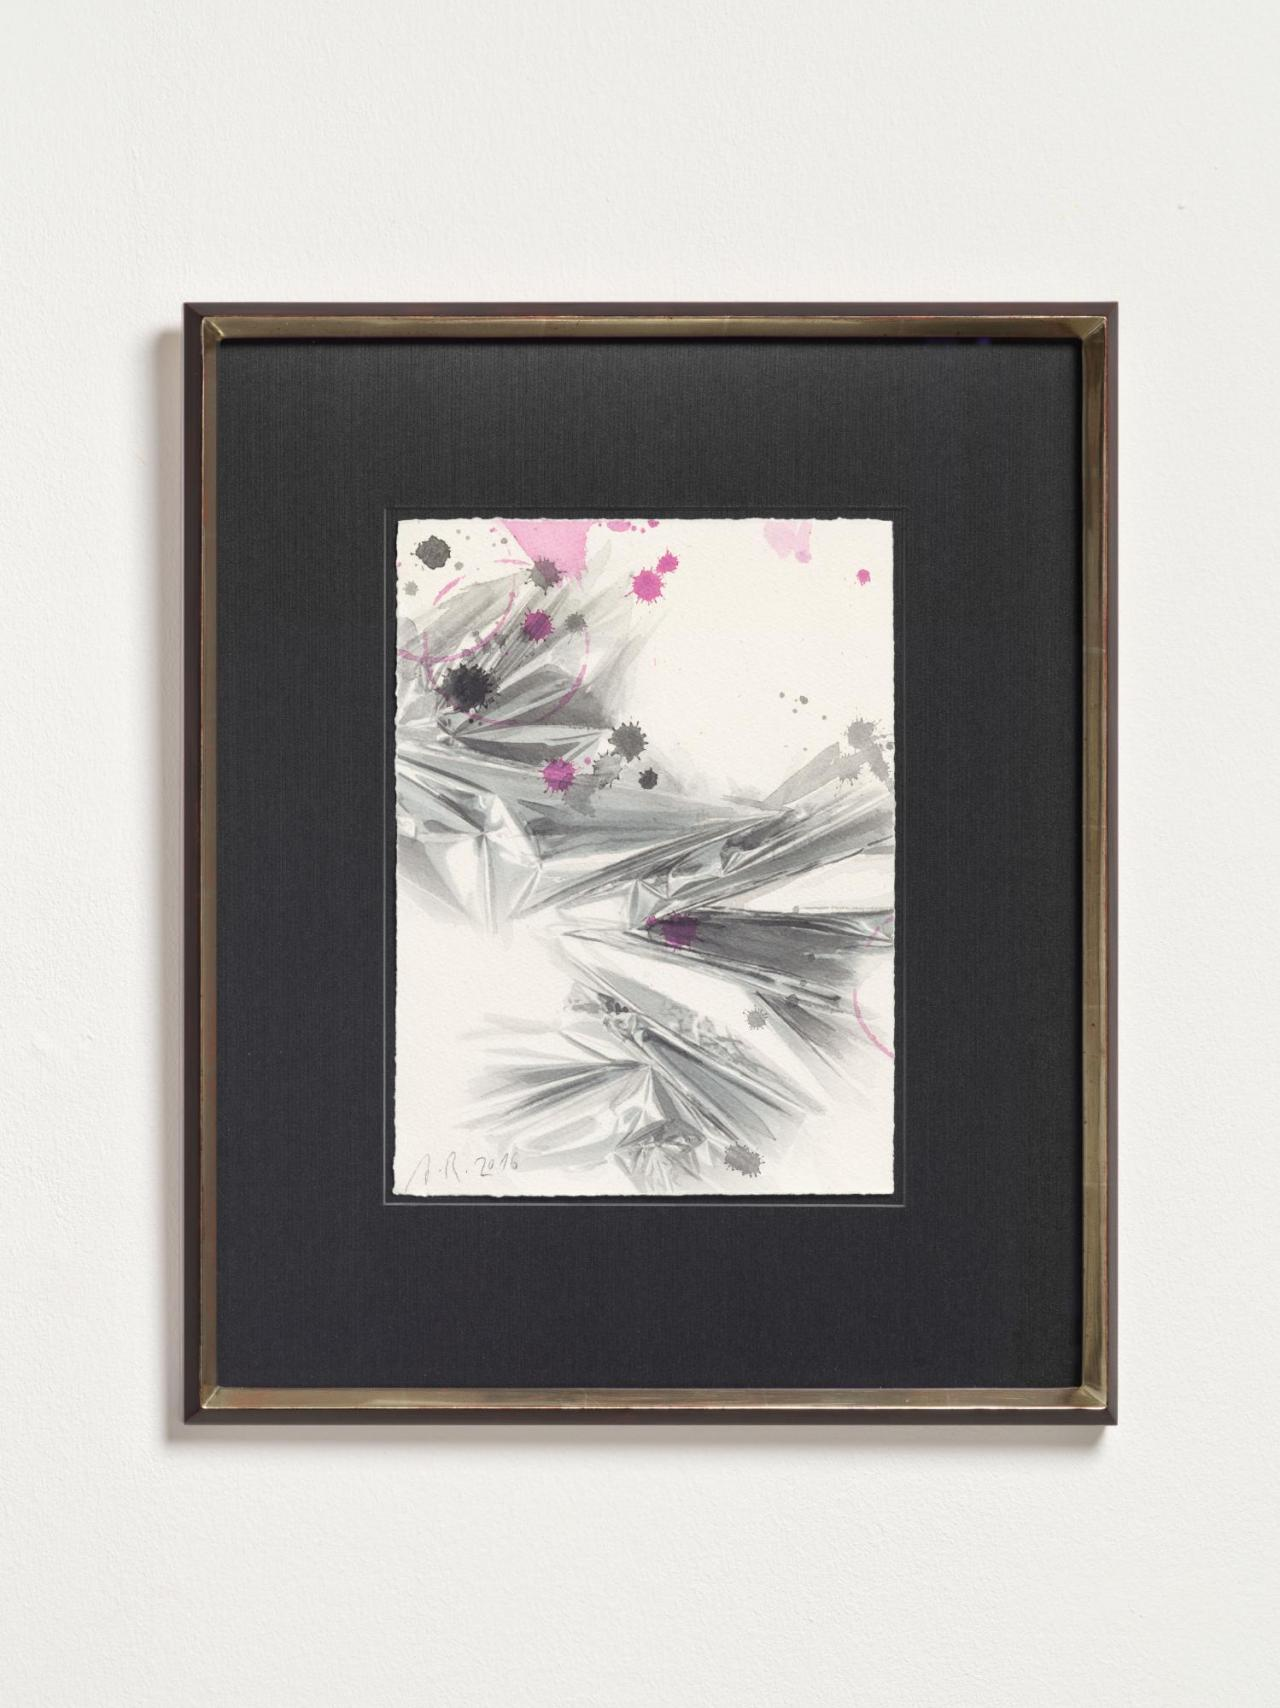 Anselm Reyle Untitled, 2016 watercolor, ink on paper, wooden frame with white gold 28.5 x 21 cm;48.6 x 41.2 x 3 cm